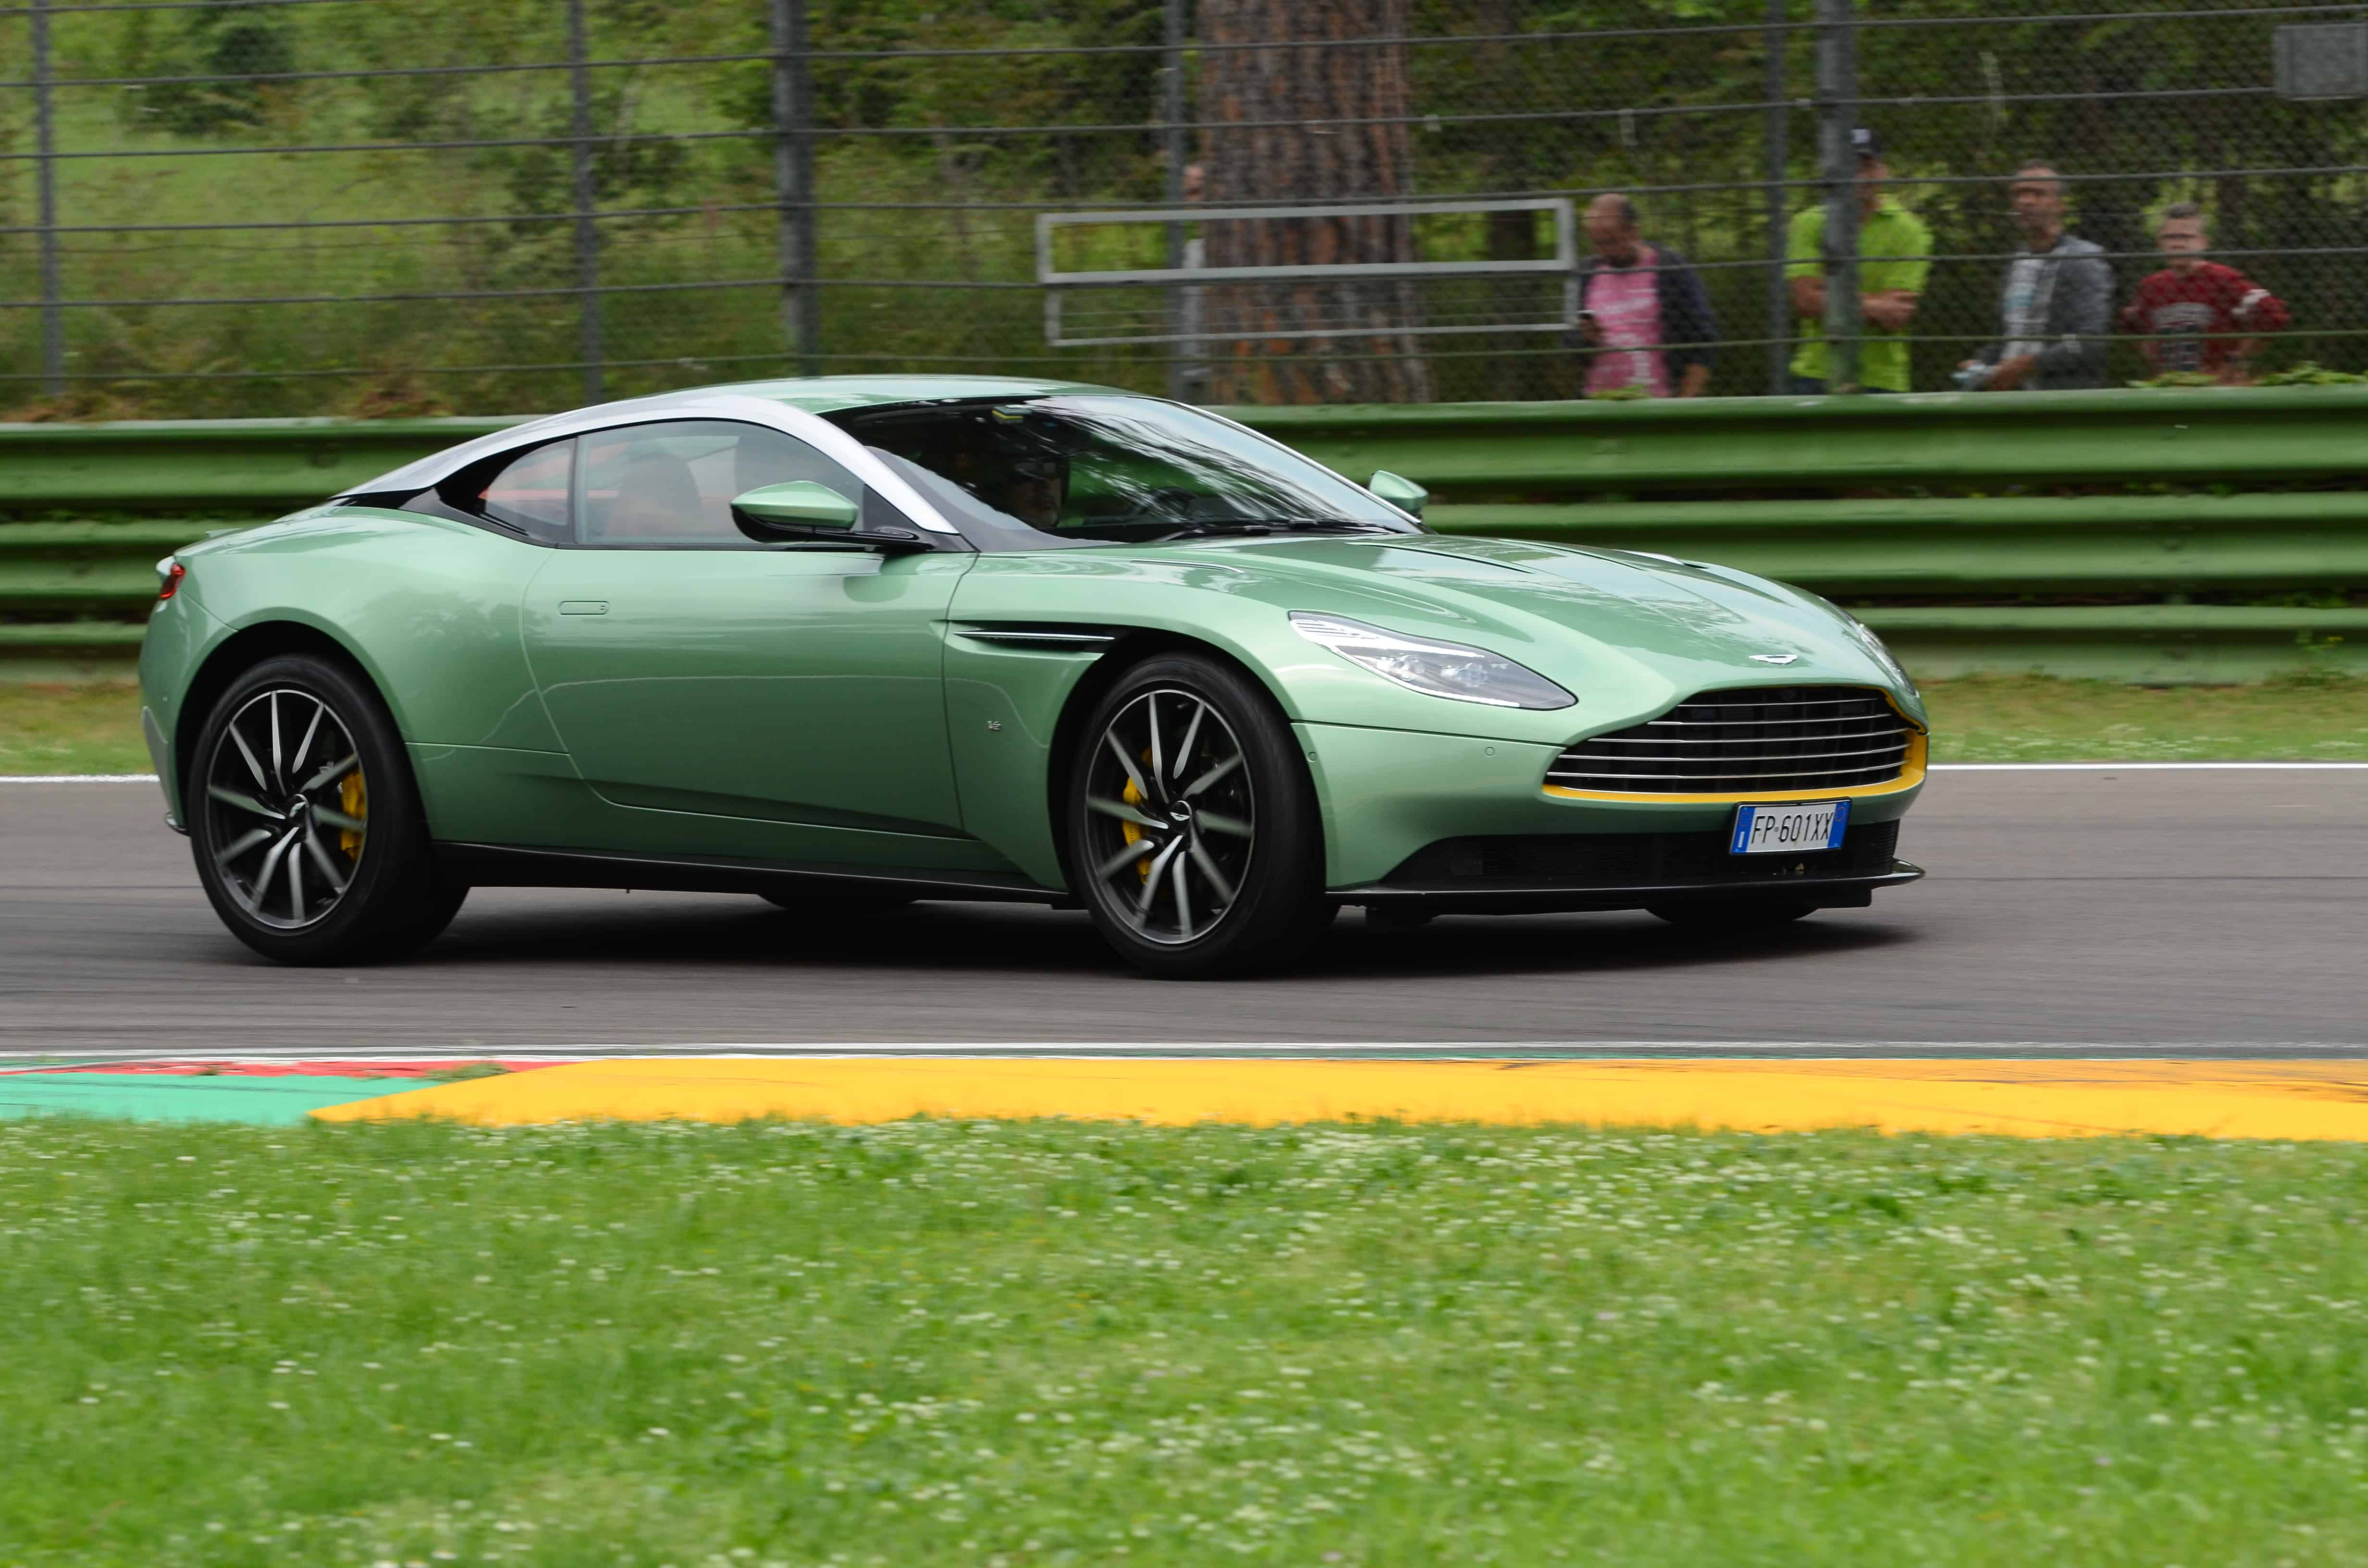 Aston Martin recalls cars with defective steering components